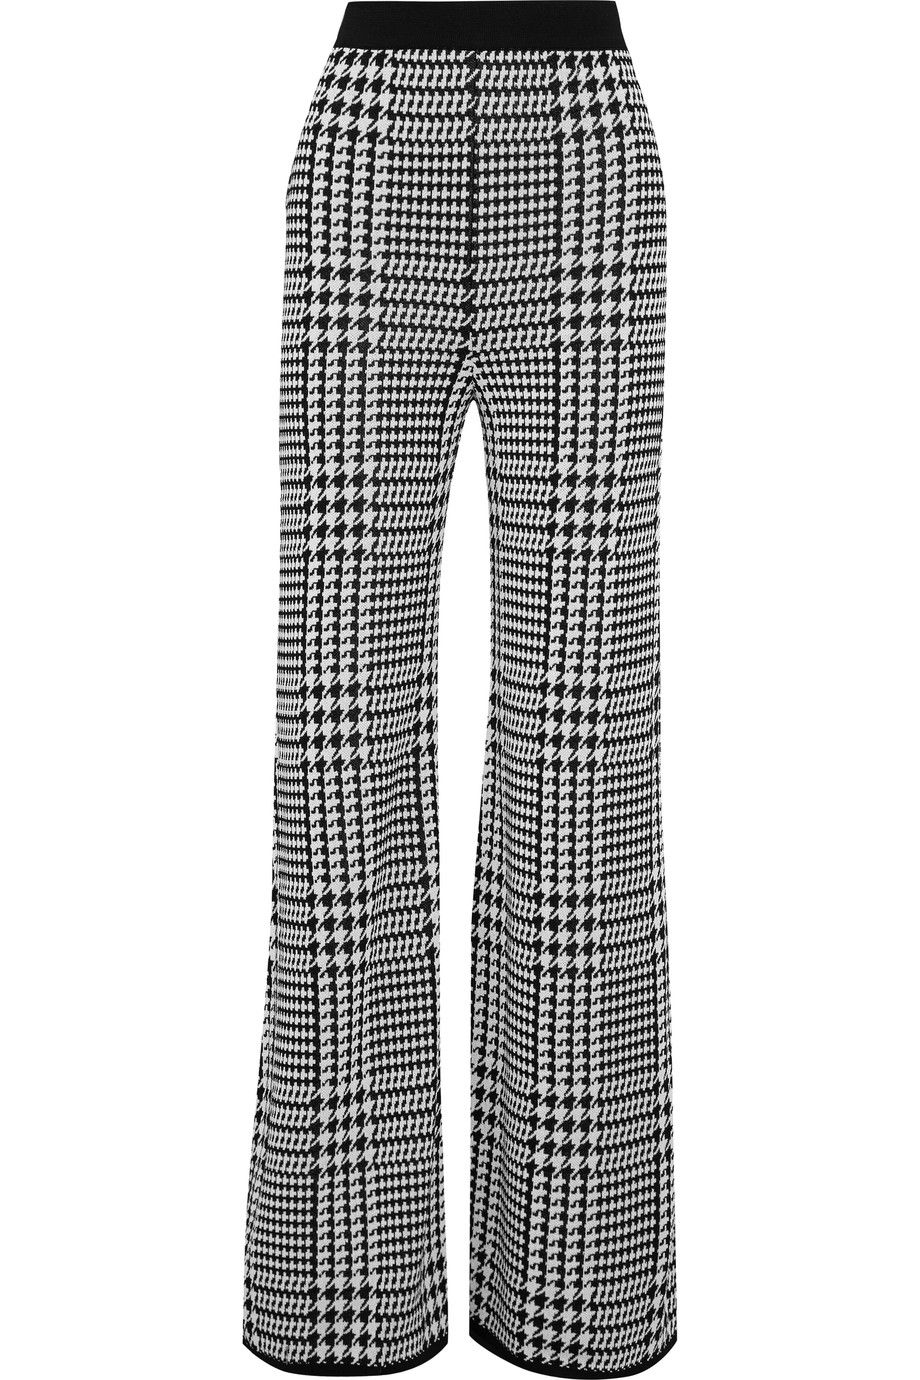 Le Meilleur Balmain Houndstooth Stretch Knit Wide Leg Pants To Buy Ce Mois Ci